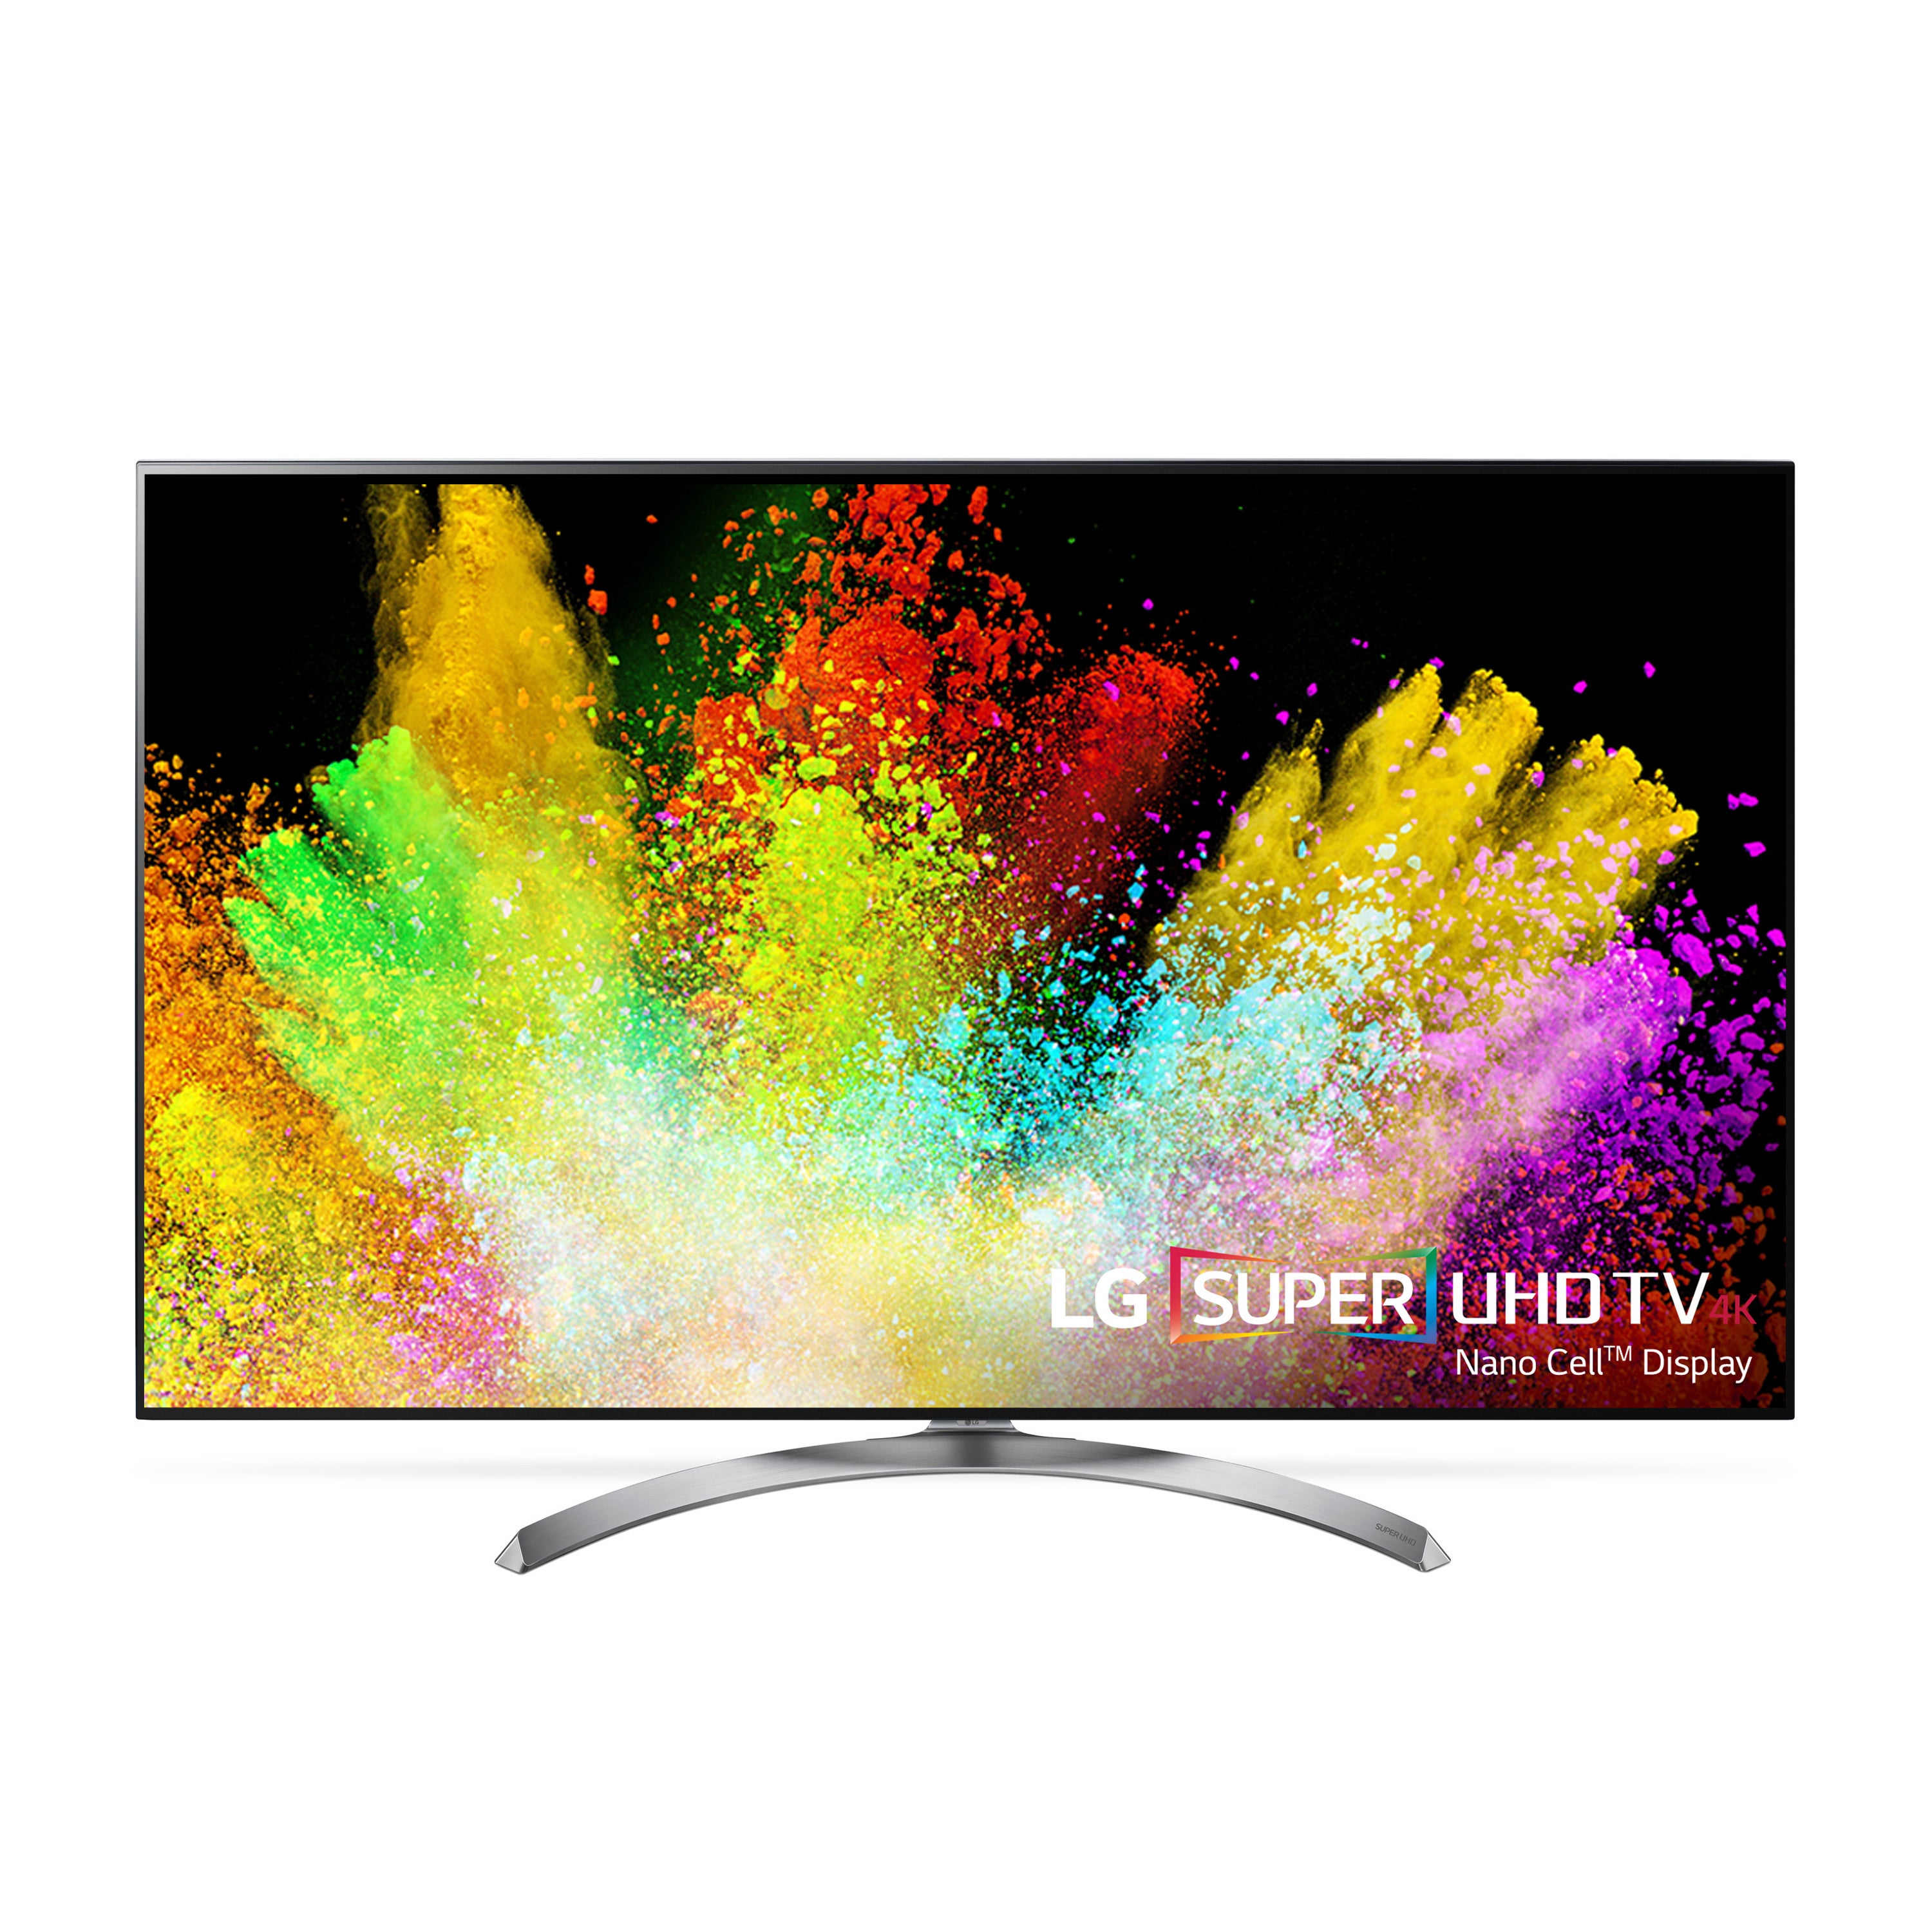 LG 55-inch Class 4K UHD 240HZ HDR LED 55JS8500 Television...